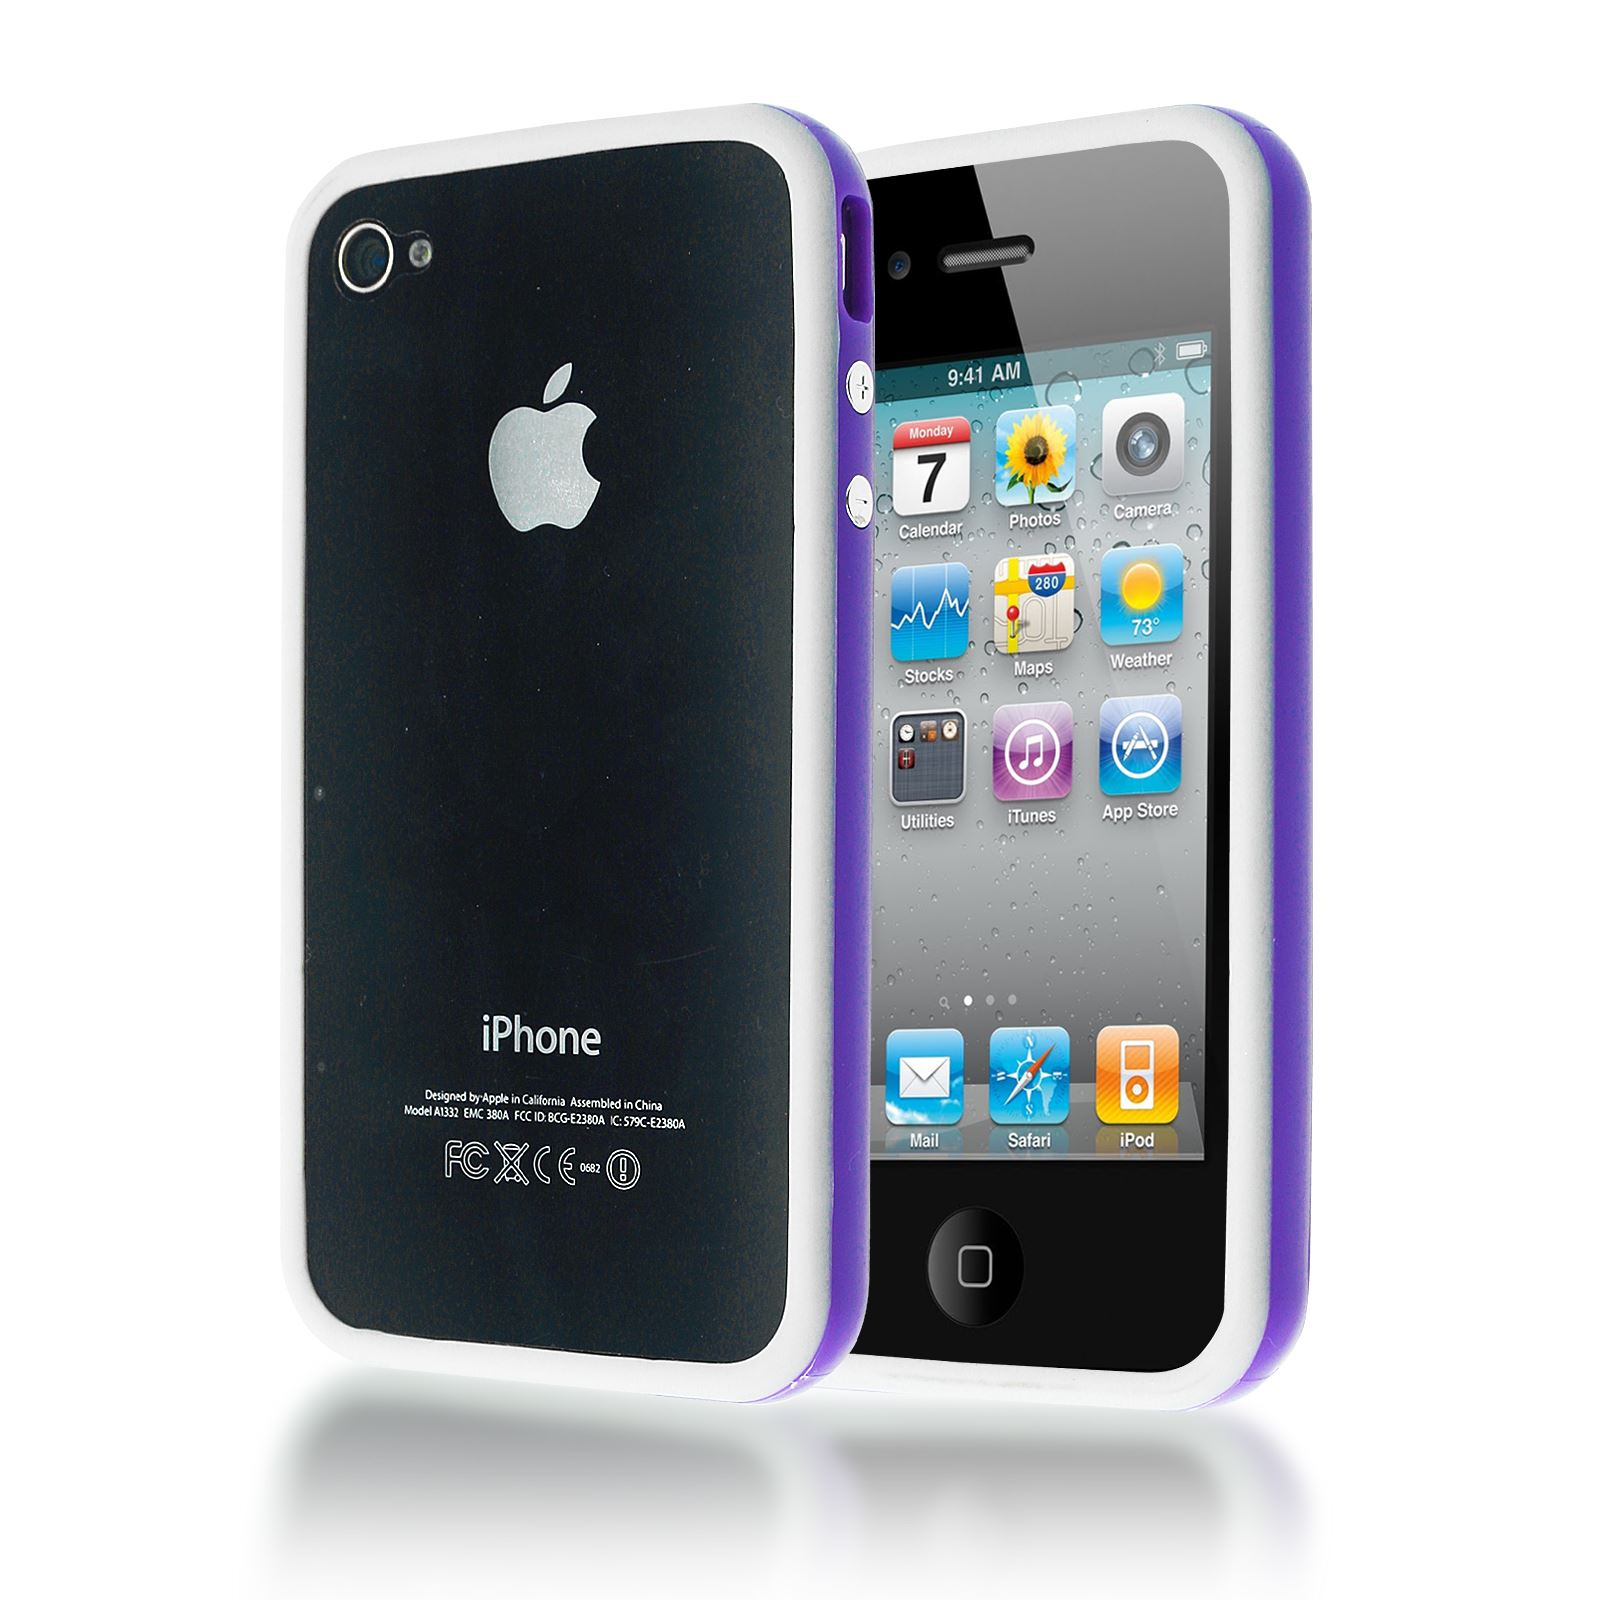 Dual couleur coque w encastr boutons silicone tui for Etui housse iphone 4